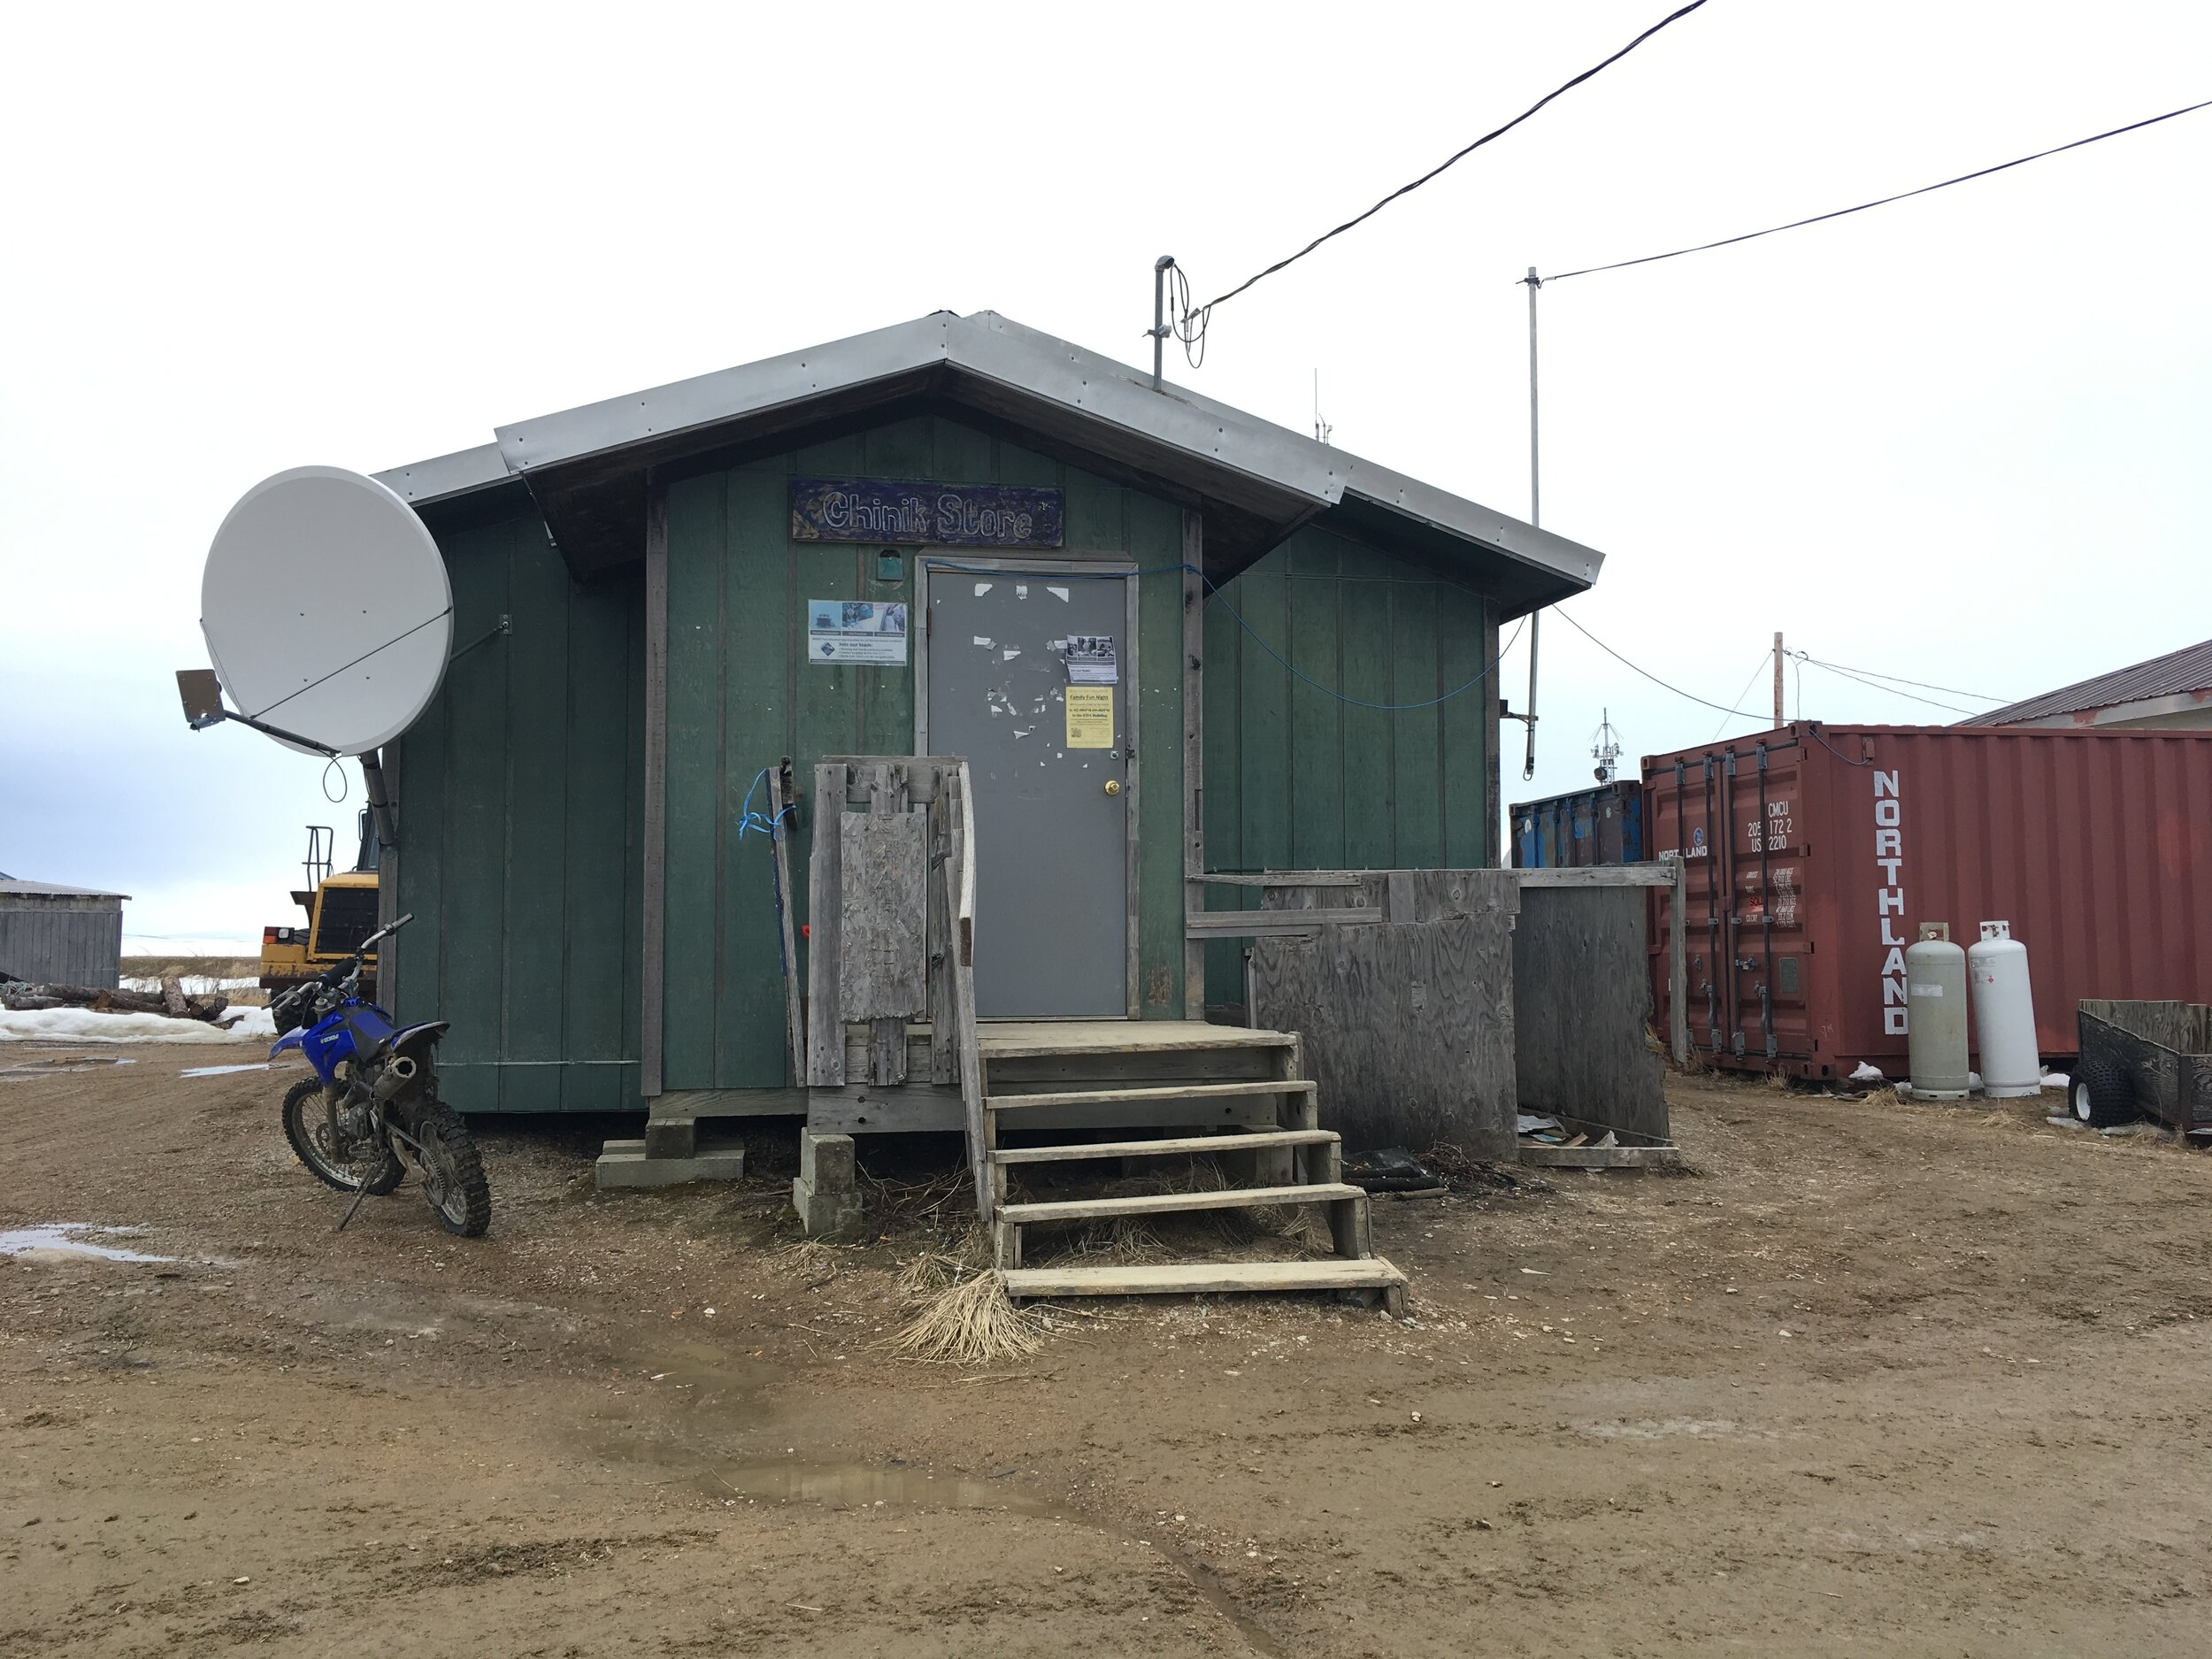 The town store in Golovin, AK (in the Nome area).